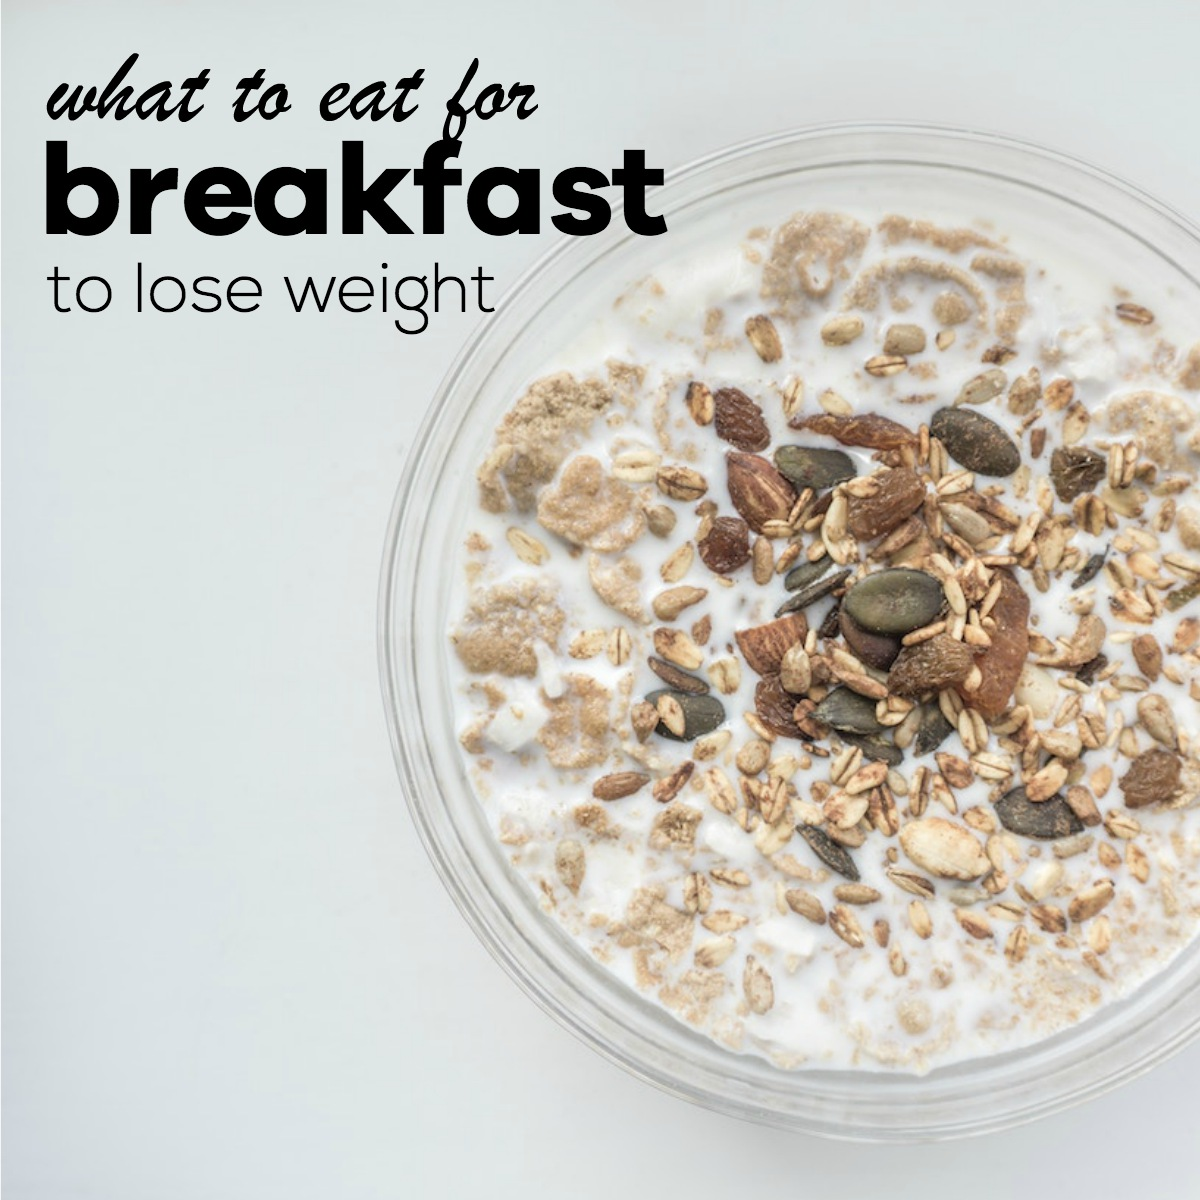 Does Breakfast Make You Fat? What to eat for breakfast to ...